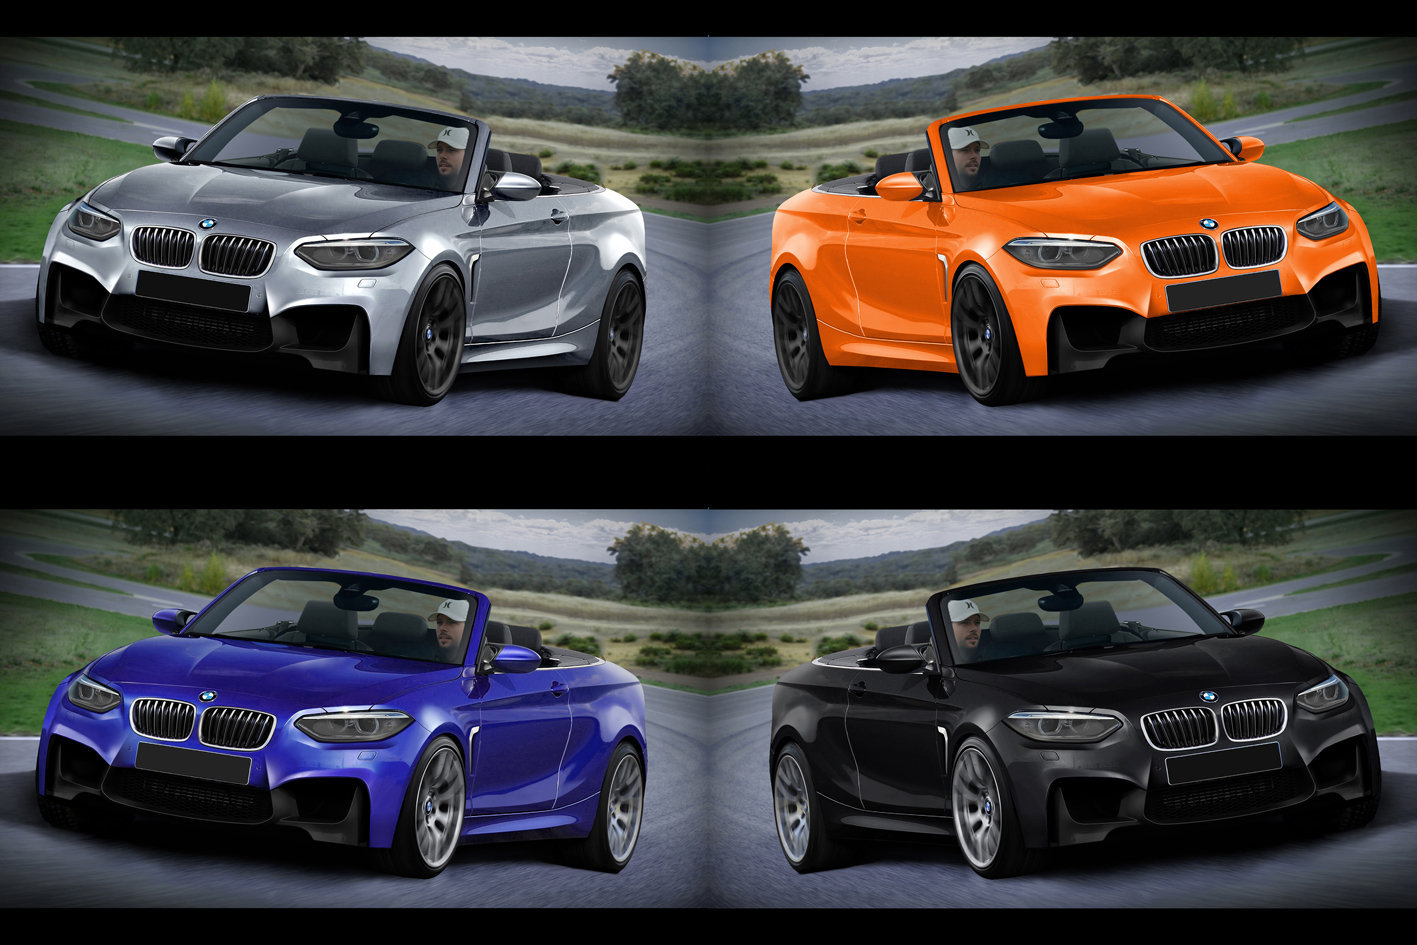 imagini studiu de design bmw m2 cabrio. Black Bedroom Furniture Sets. Home Design Ideas